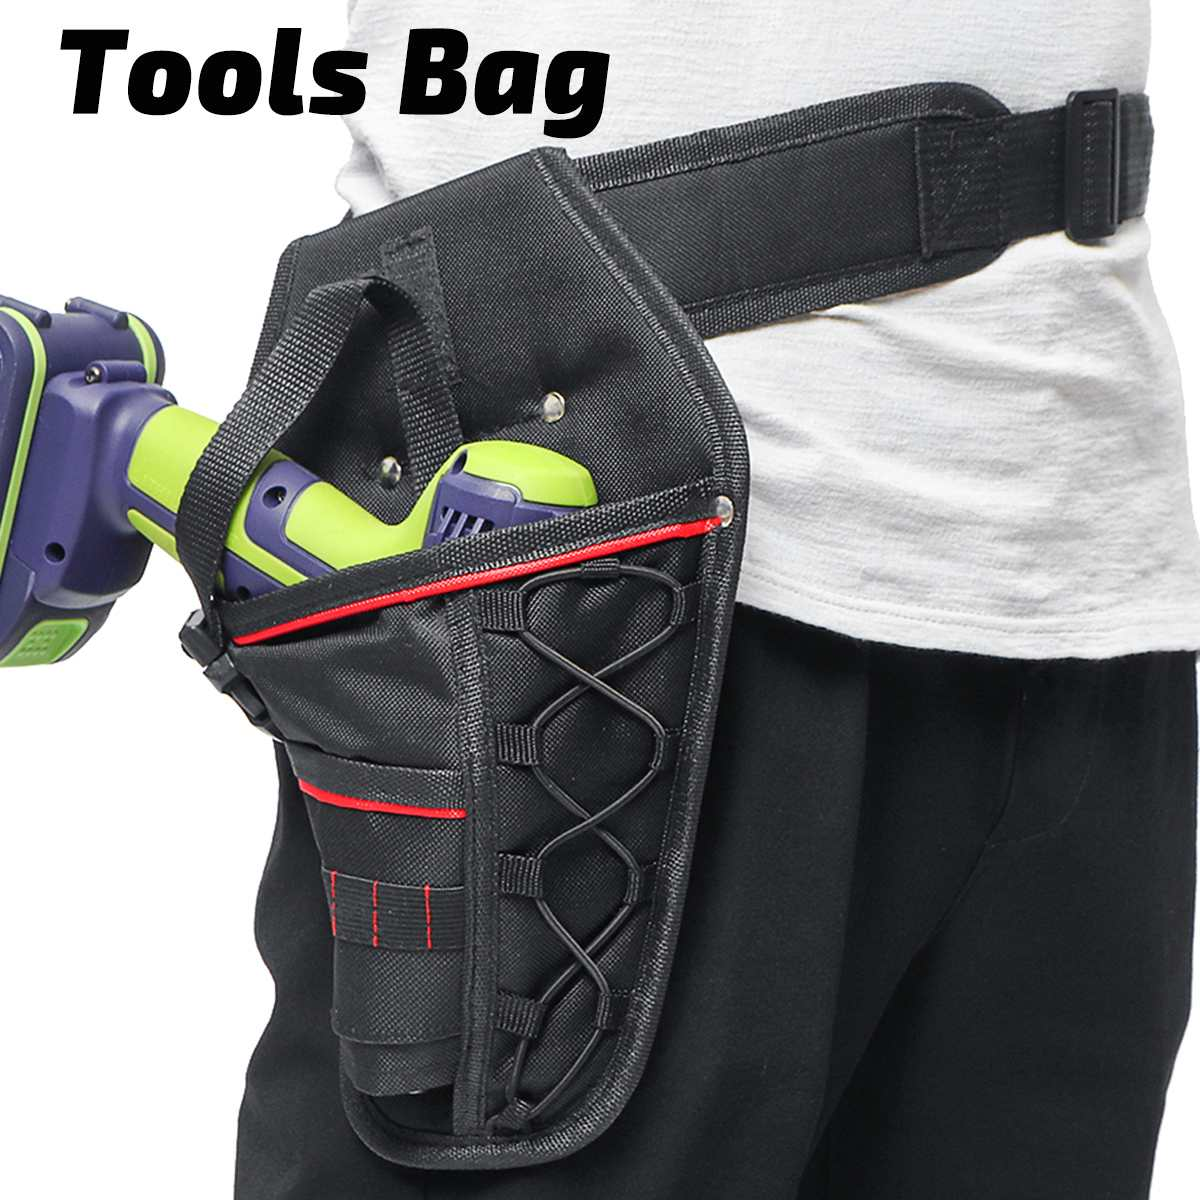 8 In 1 Portable Cordless Drill Electrician Tool Bag Multi-functional Electric Wrench Hammer Screwdriver Holder Waist Bag Pouch